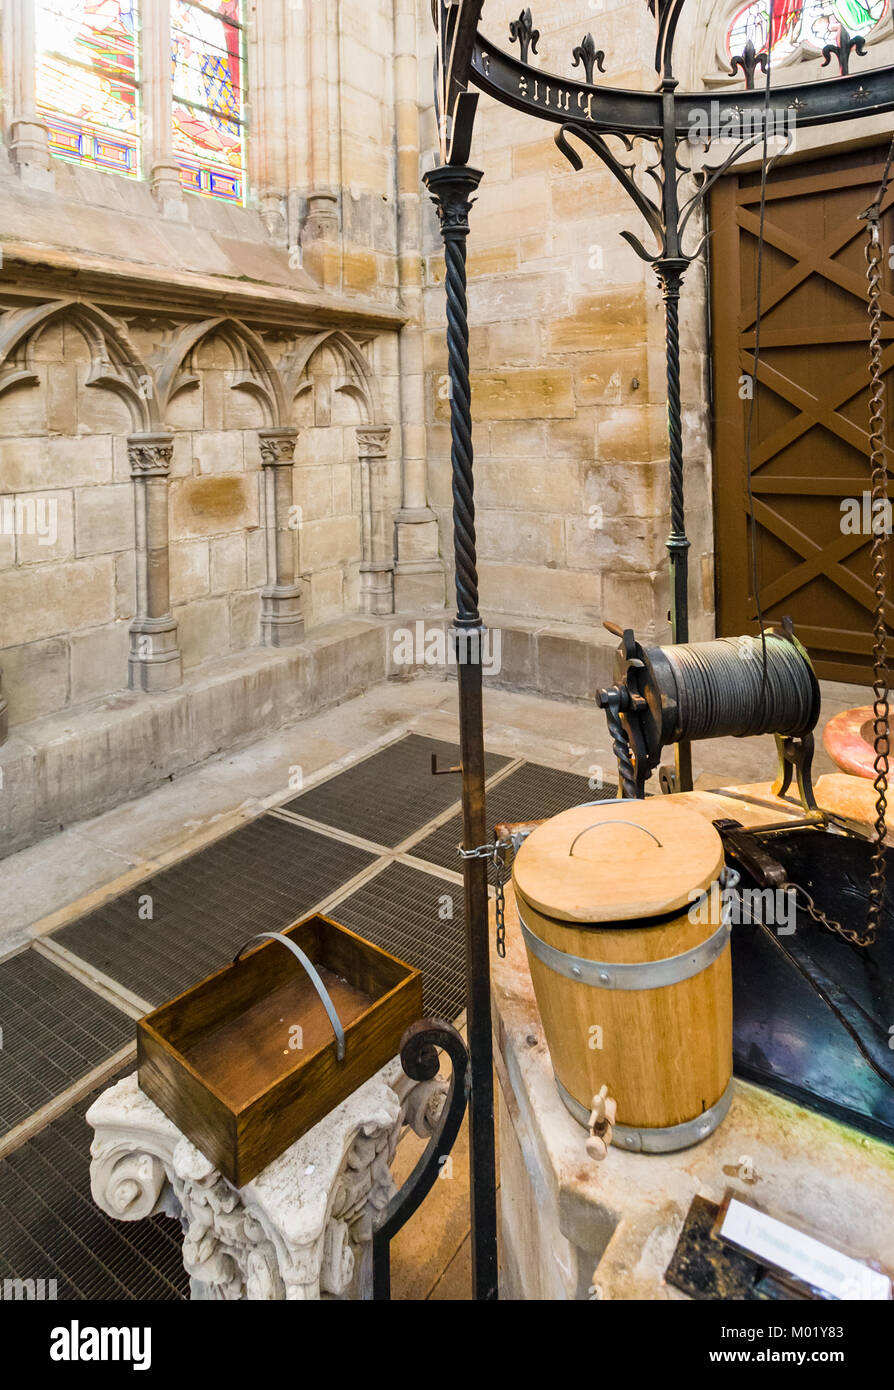 L'EPINE, FRANCE - JUNE 29, 2010: well indoor of Basilica of Our Lady of the Thorn in village of L'Epine. - Stock Image